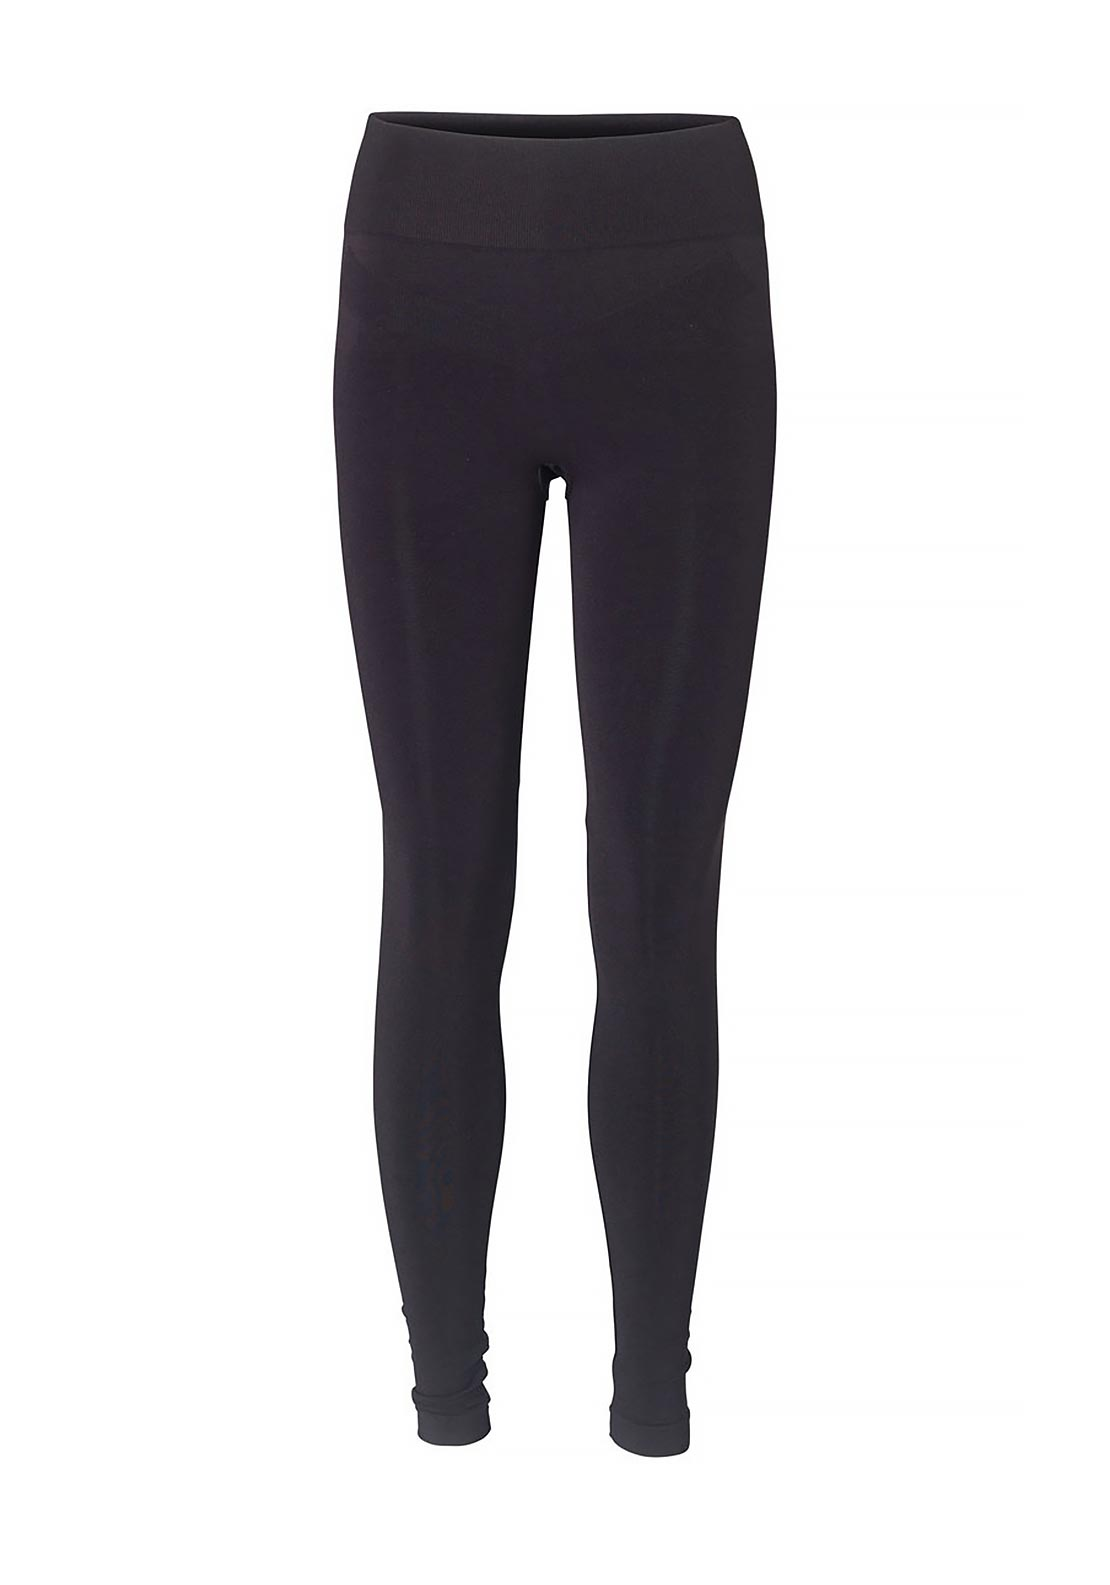 Vero Moda Fix It Support Leggings, Black